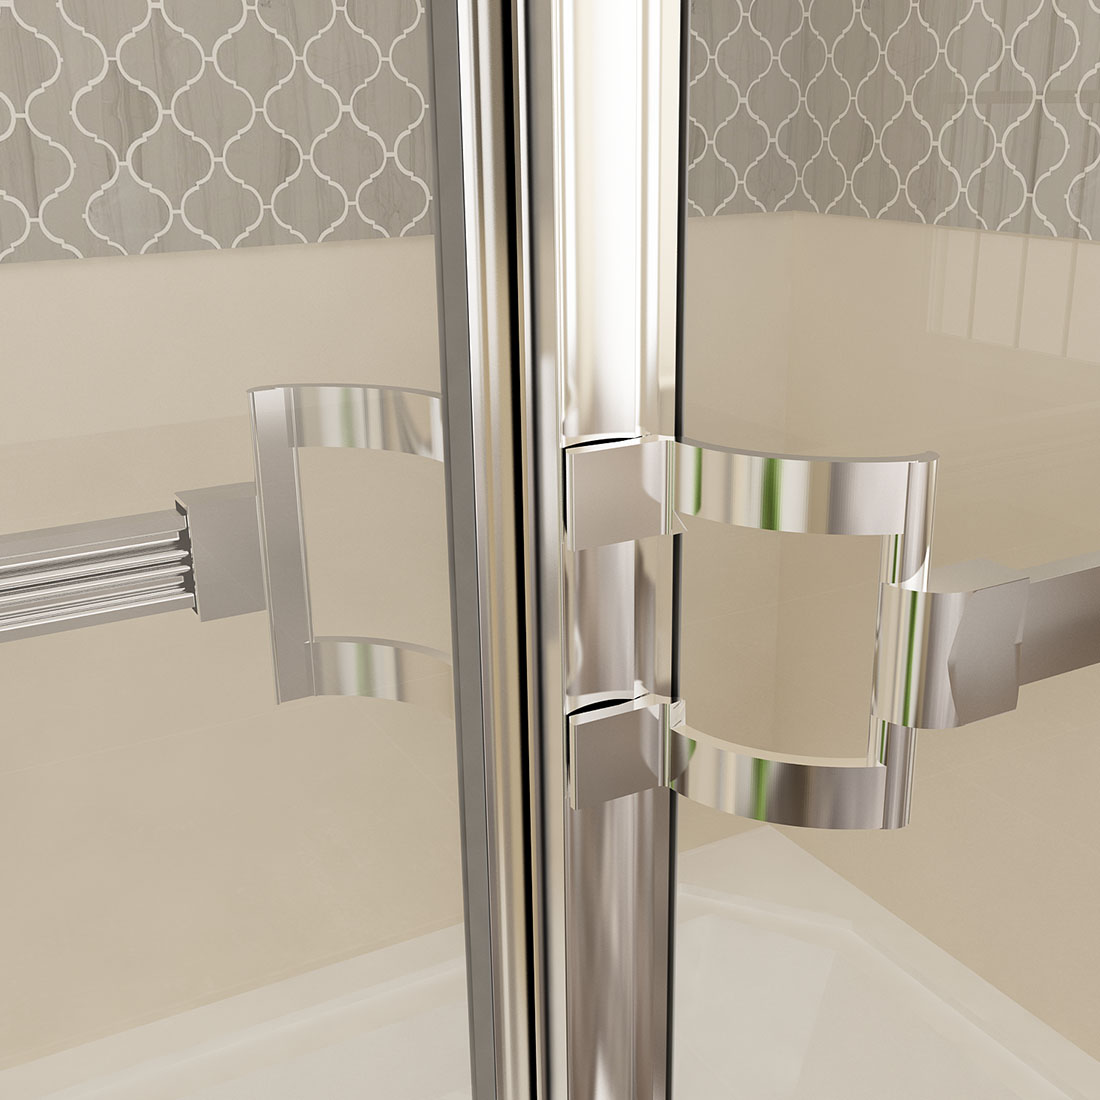 Sunny Shower 60 Quot Bypass Sliding Bathtub Glass Doors Framed